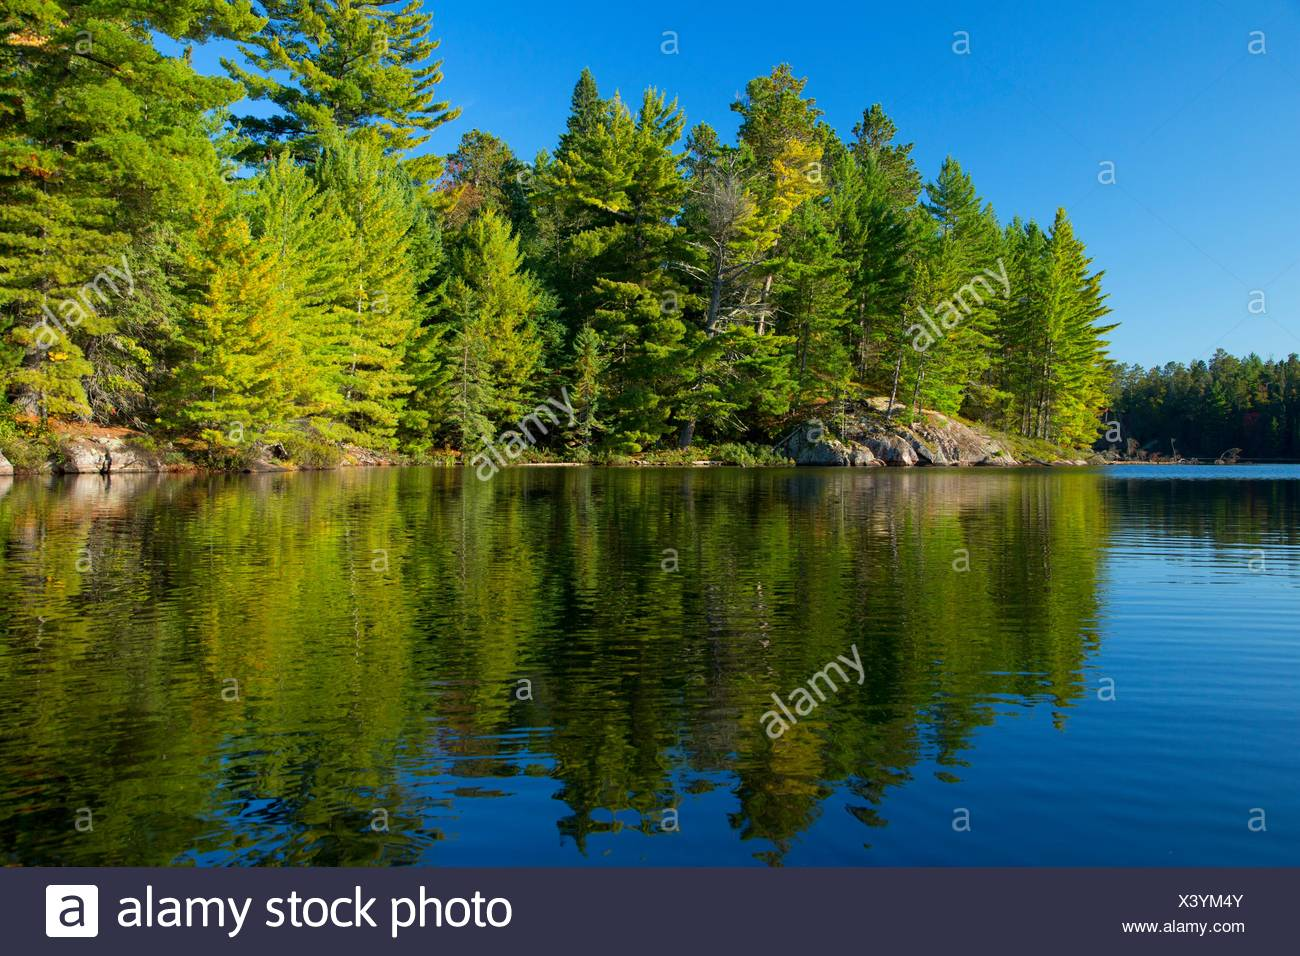 South Hegman Lake, Boundary Waters Canoe Area Wilderness, Superior National Forest, Minnesota. - Stock Image